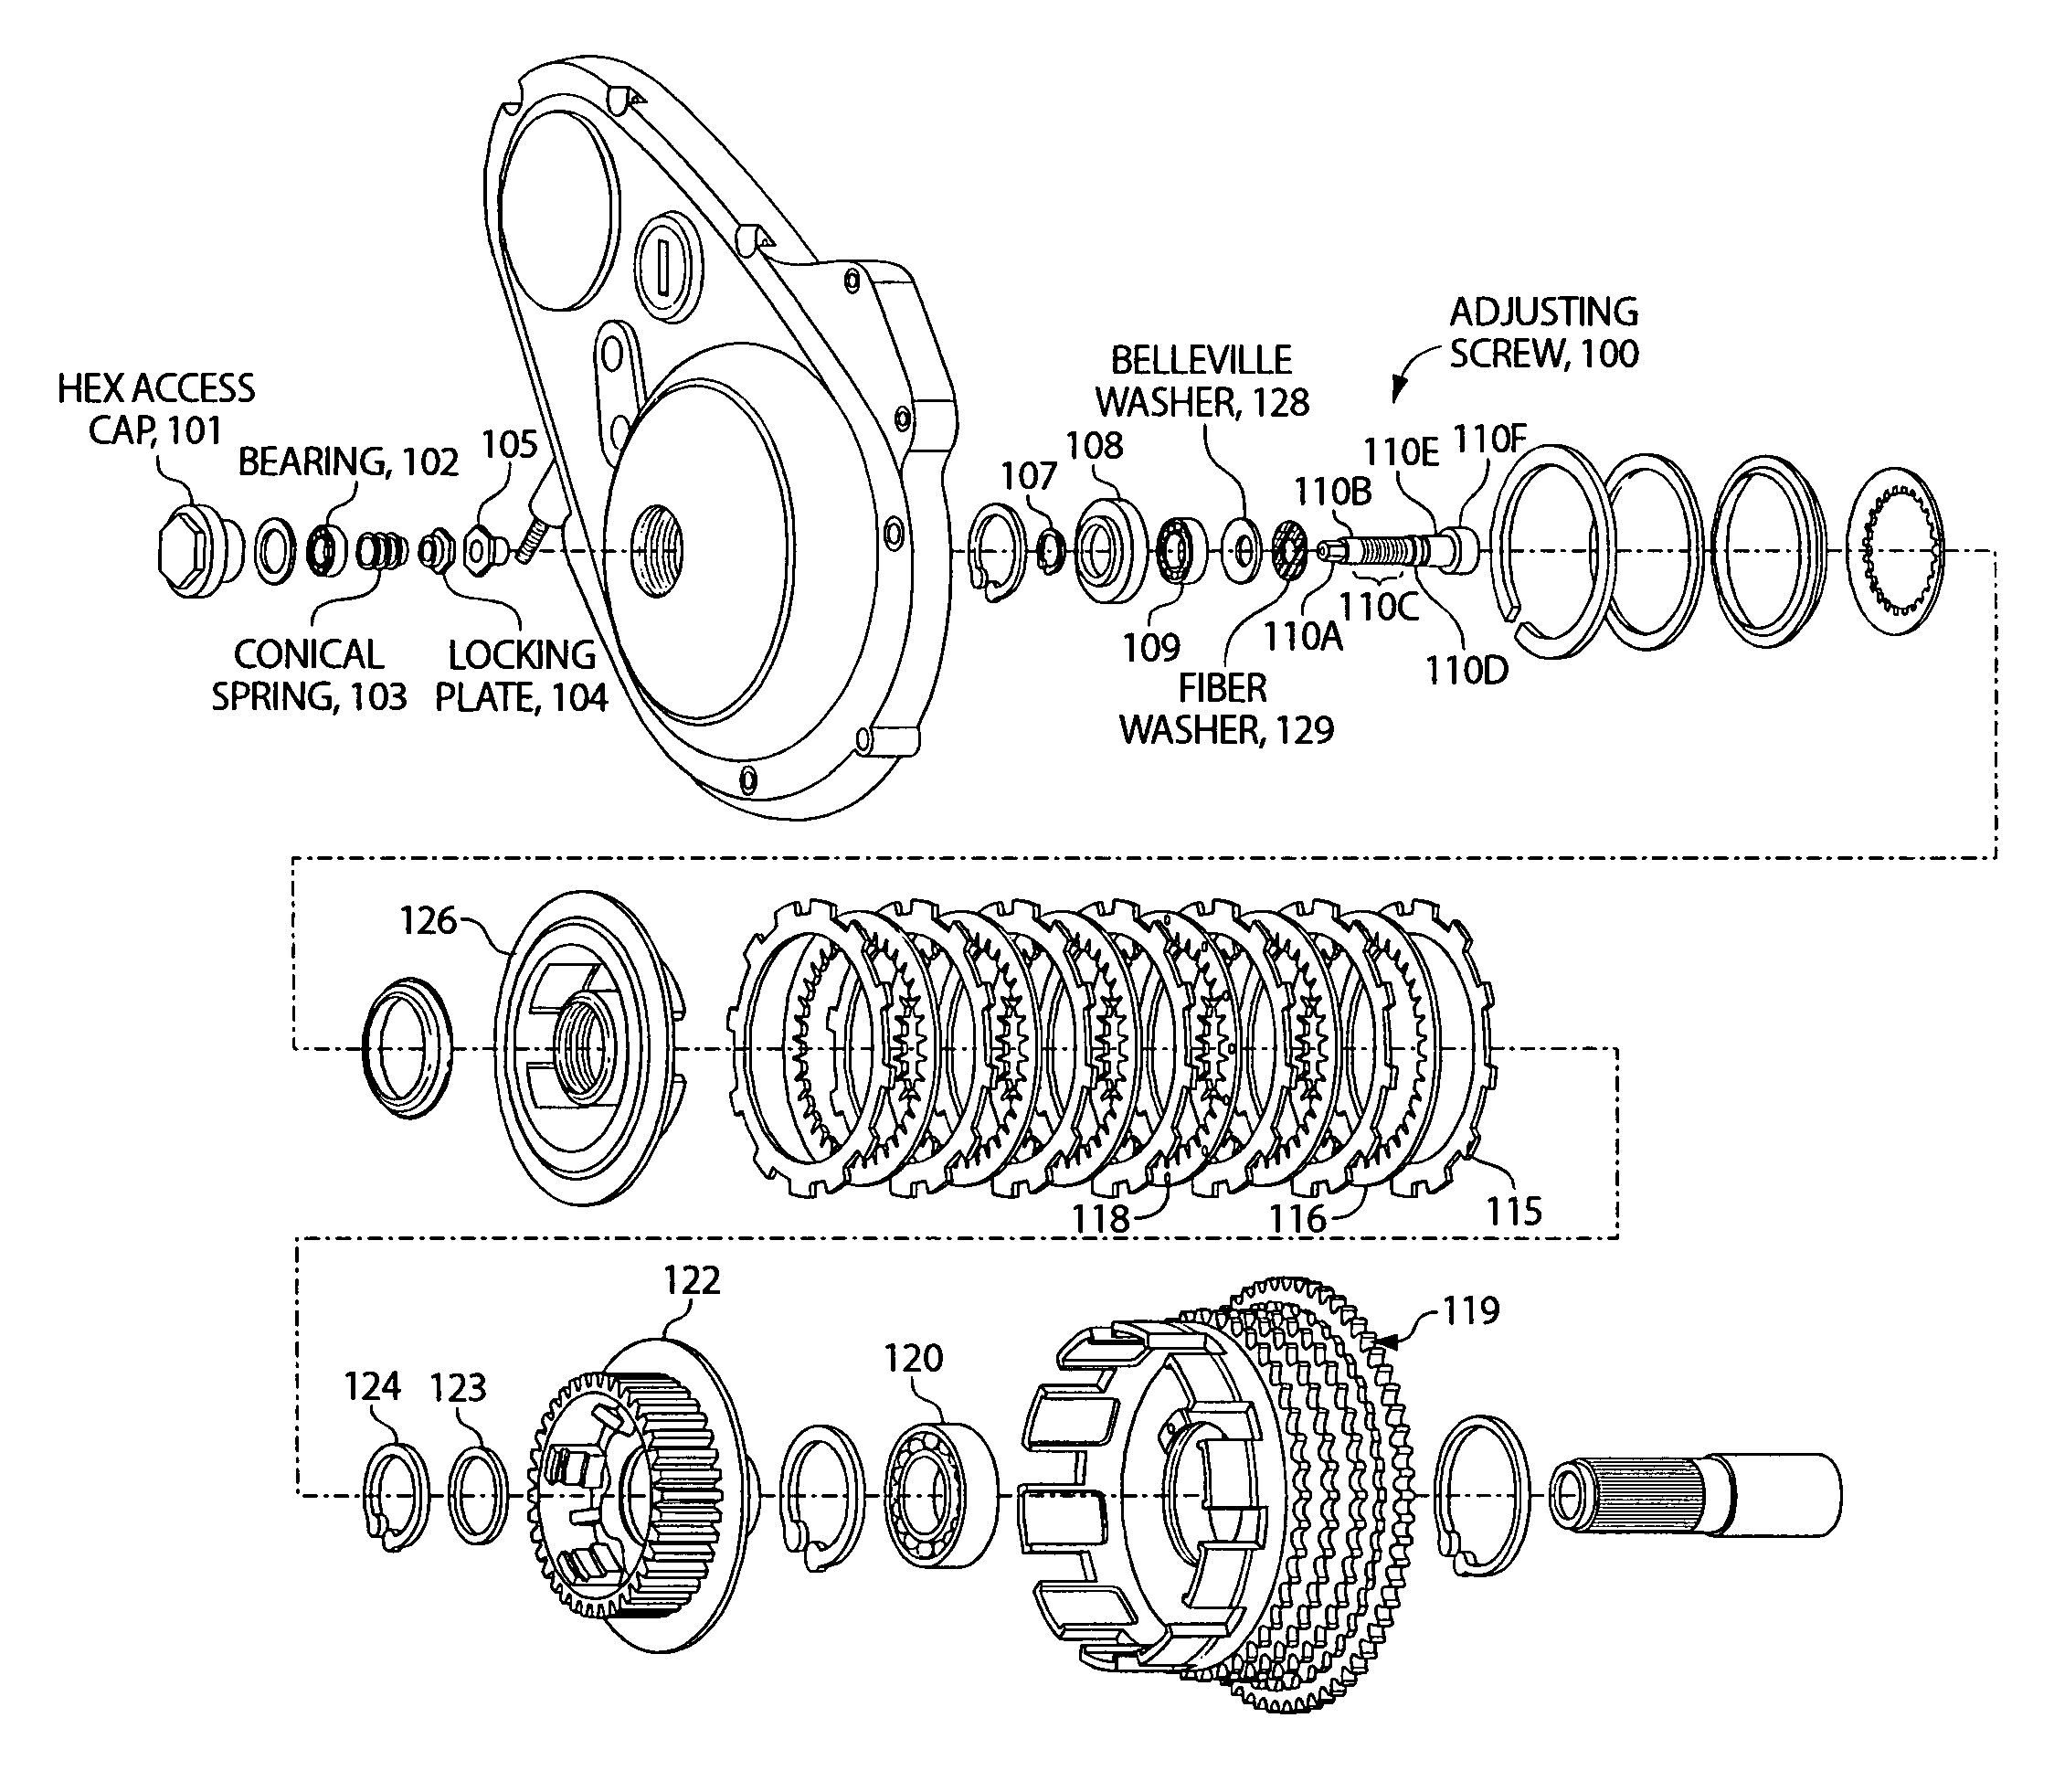 Harley Davidson Clutch Assembly Diagram Wiring Diagrams Twin Cam Chain Tensioner On 103 Engine Driveline Free 2007 Sportster 1997 Basket